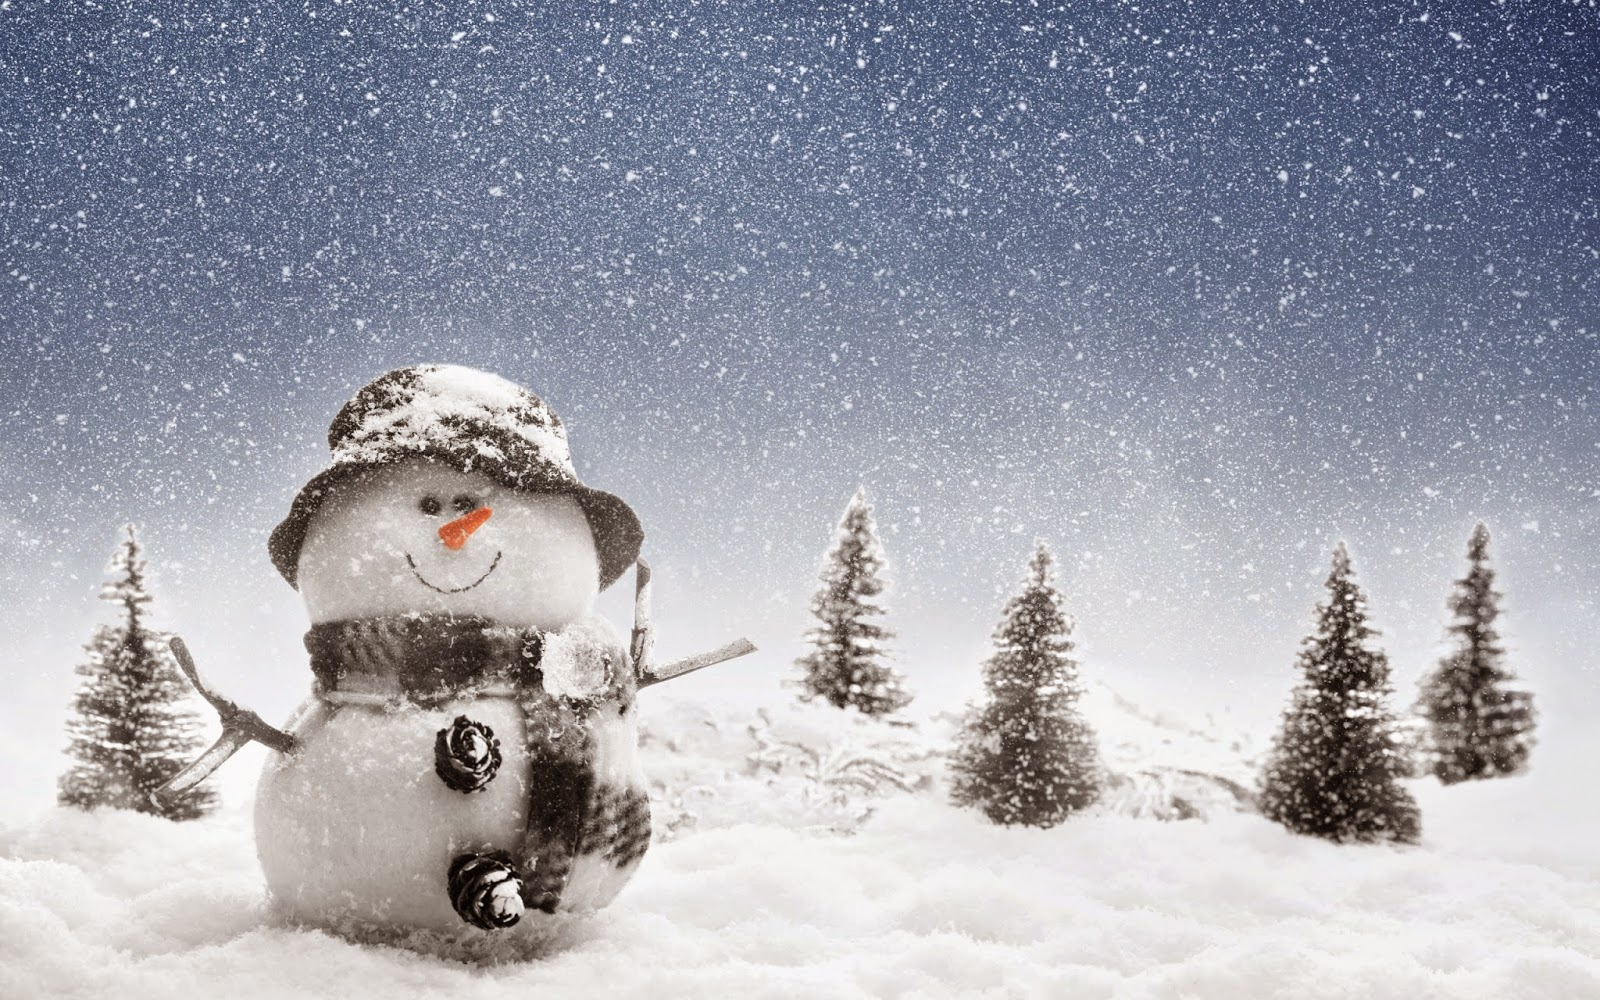 snowman-cute-images-for-facebook-and-whatsapp-sharing-for-friends-family-HD-photos.jpg